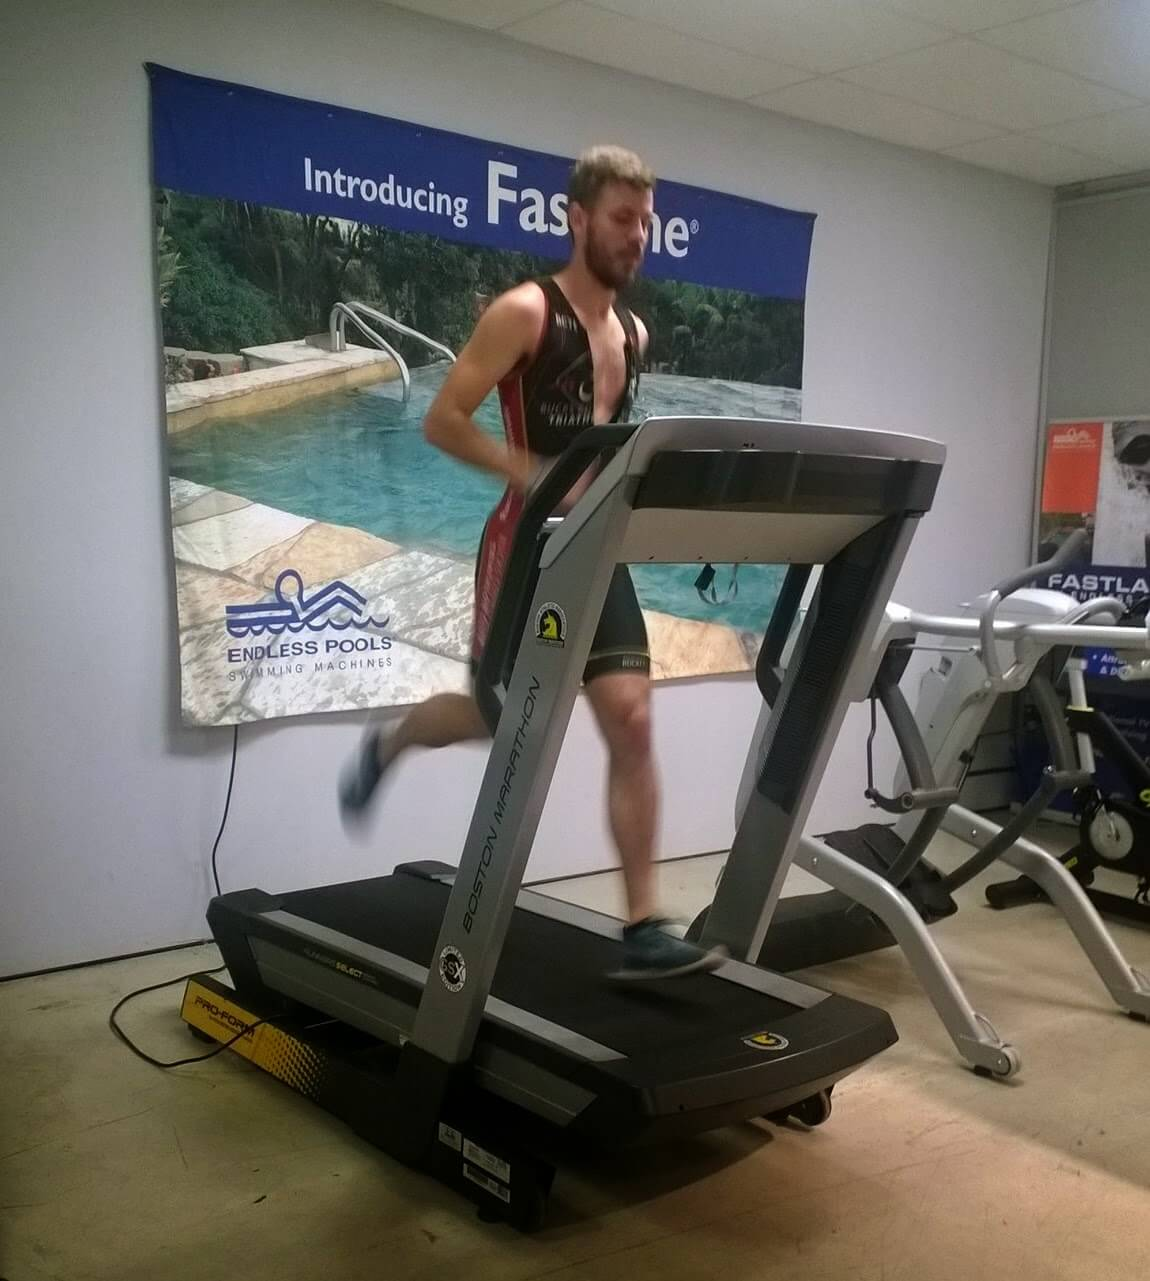 a triathlete on a treadmill at the Endless Pools Factory Showroom